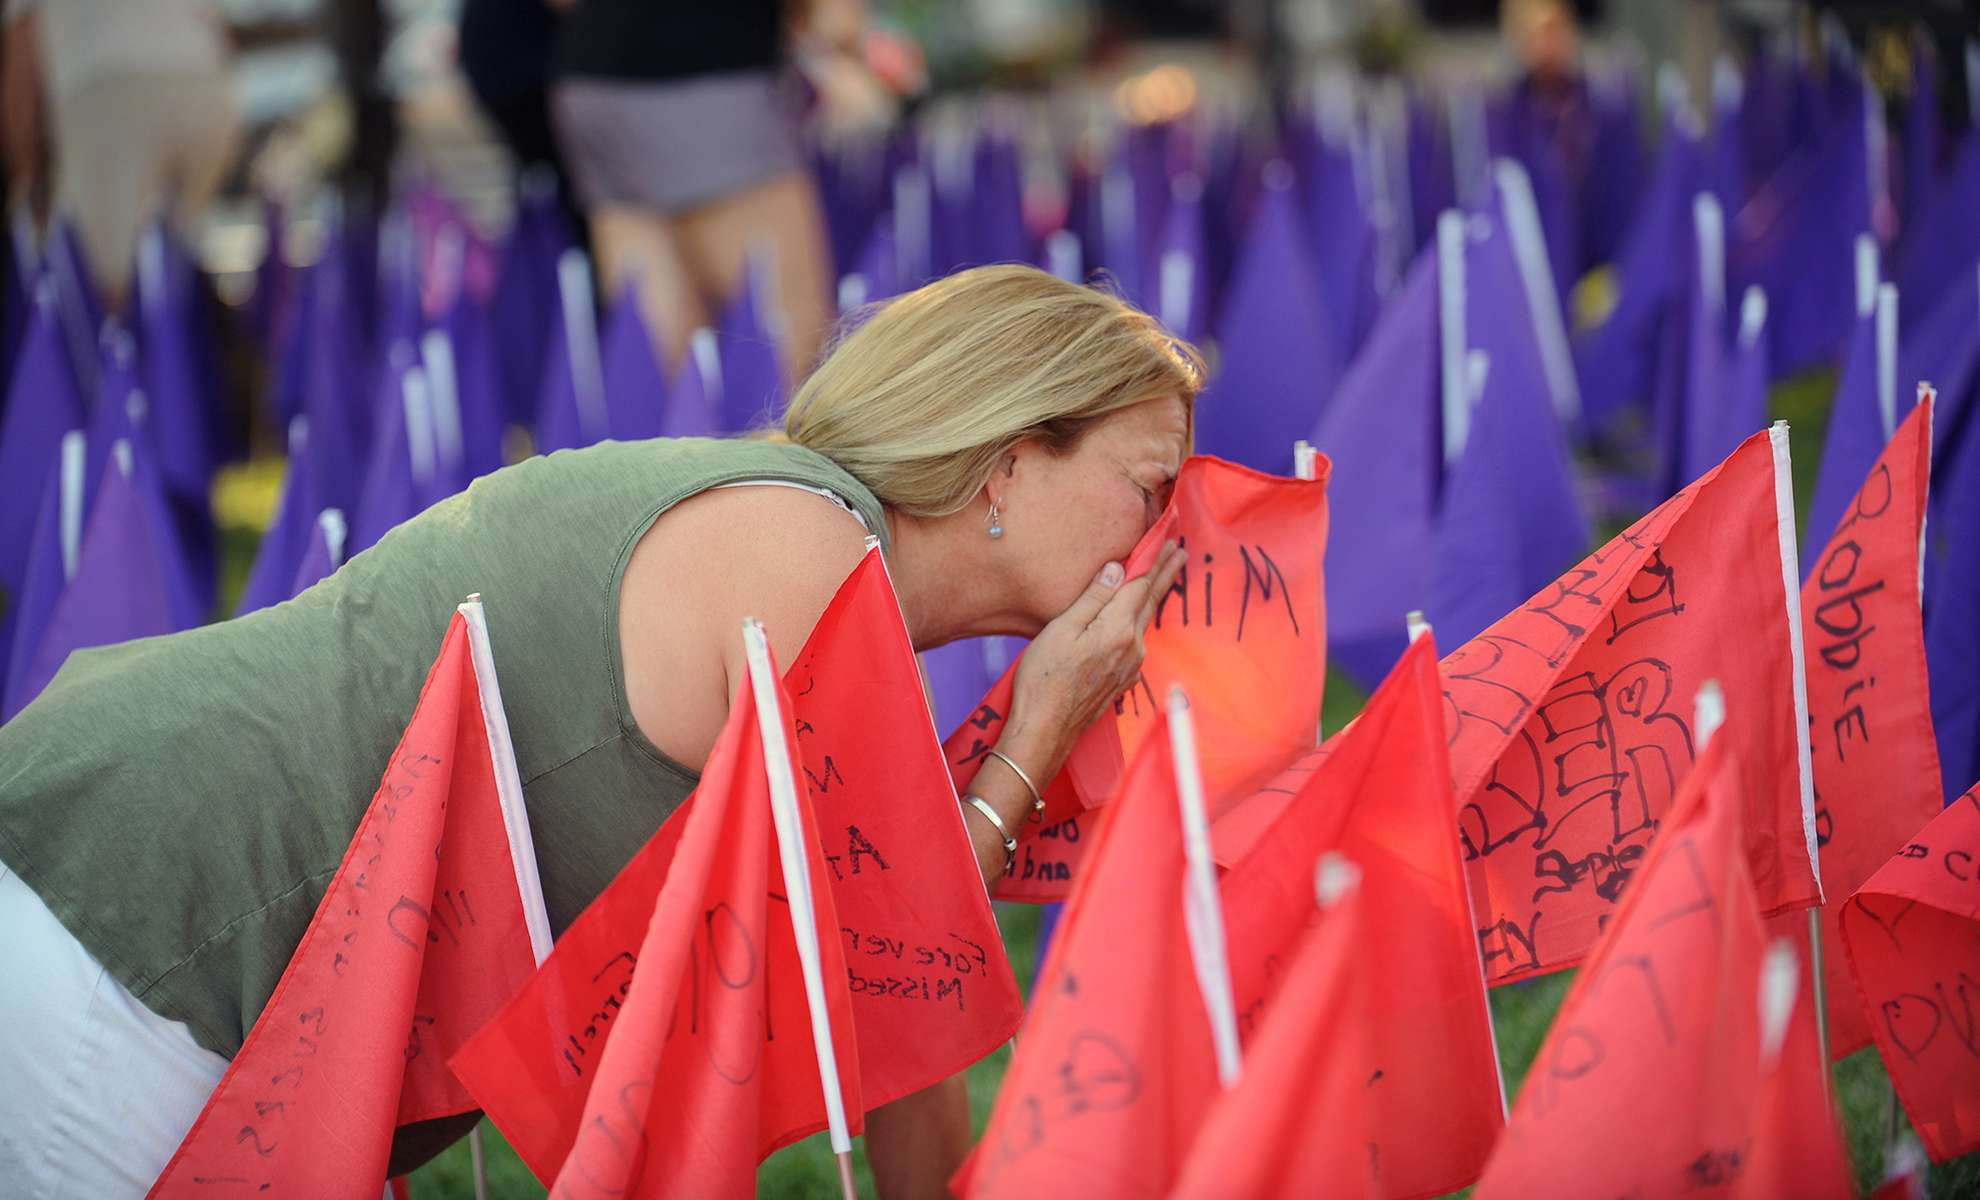 8/21/20-- On the lawn of the First Congregational Church in Natick Friday evening, Theresa Reddish, of Natick, kisses a flag in memory of her son, Michael Reddish, who died in 2017 of a fentanyl overdose. Purple flags were placed on the church lawn in advance of Opioid Awareness Day August 31. There were 2, 015 opioid overdose deaths in Massachusetts in 2019.  [Daily News and Wicked Local Staff Photo/Art Illman]